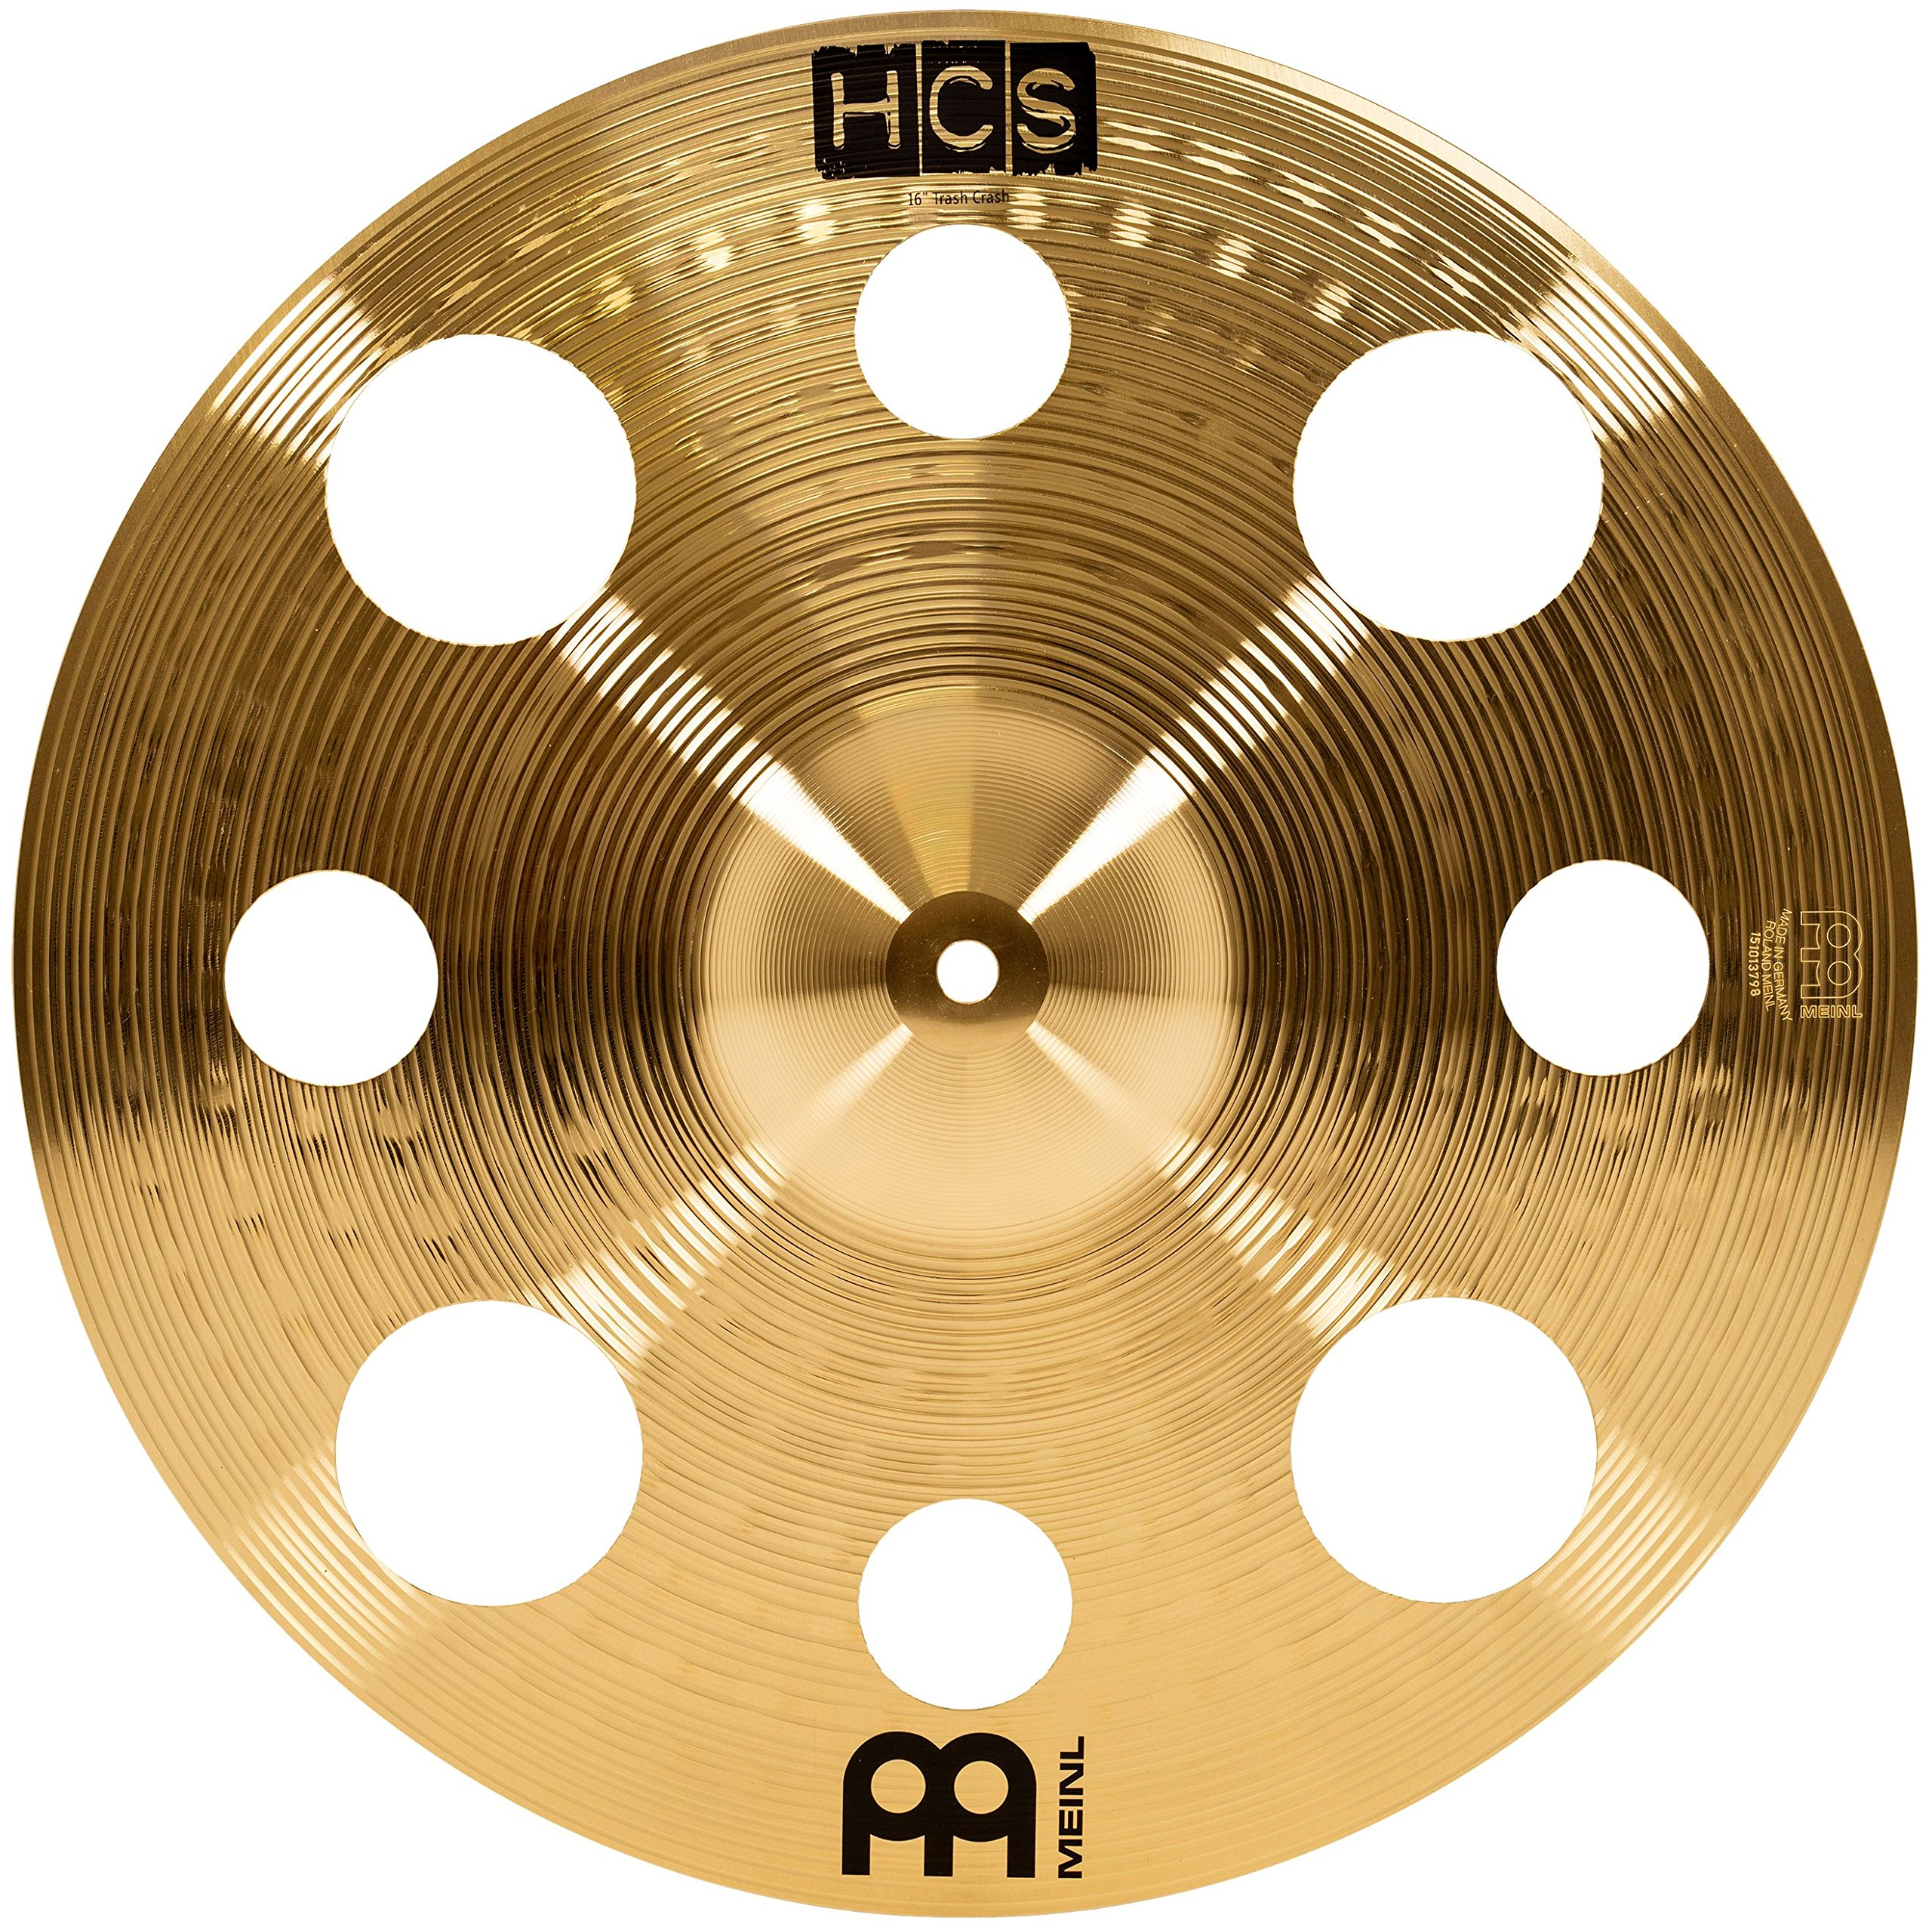 Meinl 16'' Trash Crash Cymbal with Holes - HCS Traditional Finish Brass for Drum Set, Made In Germany, 2-YEAR WARRANTY (HCS16TRC) by Meinl Cymbals